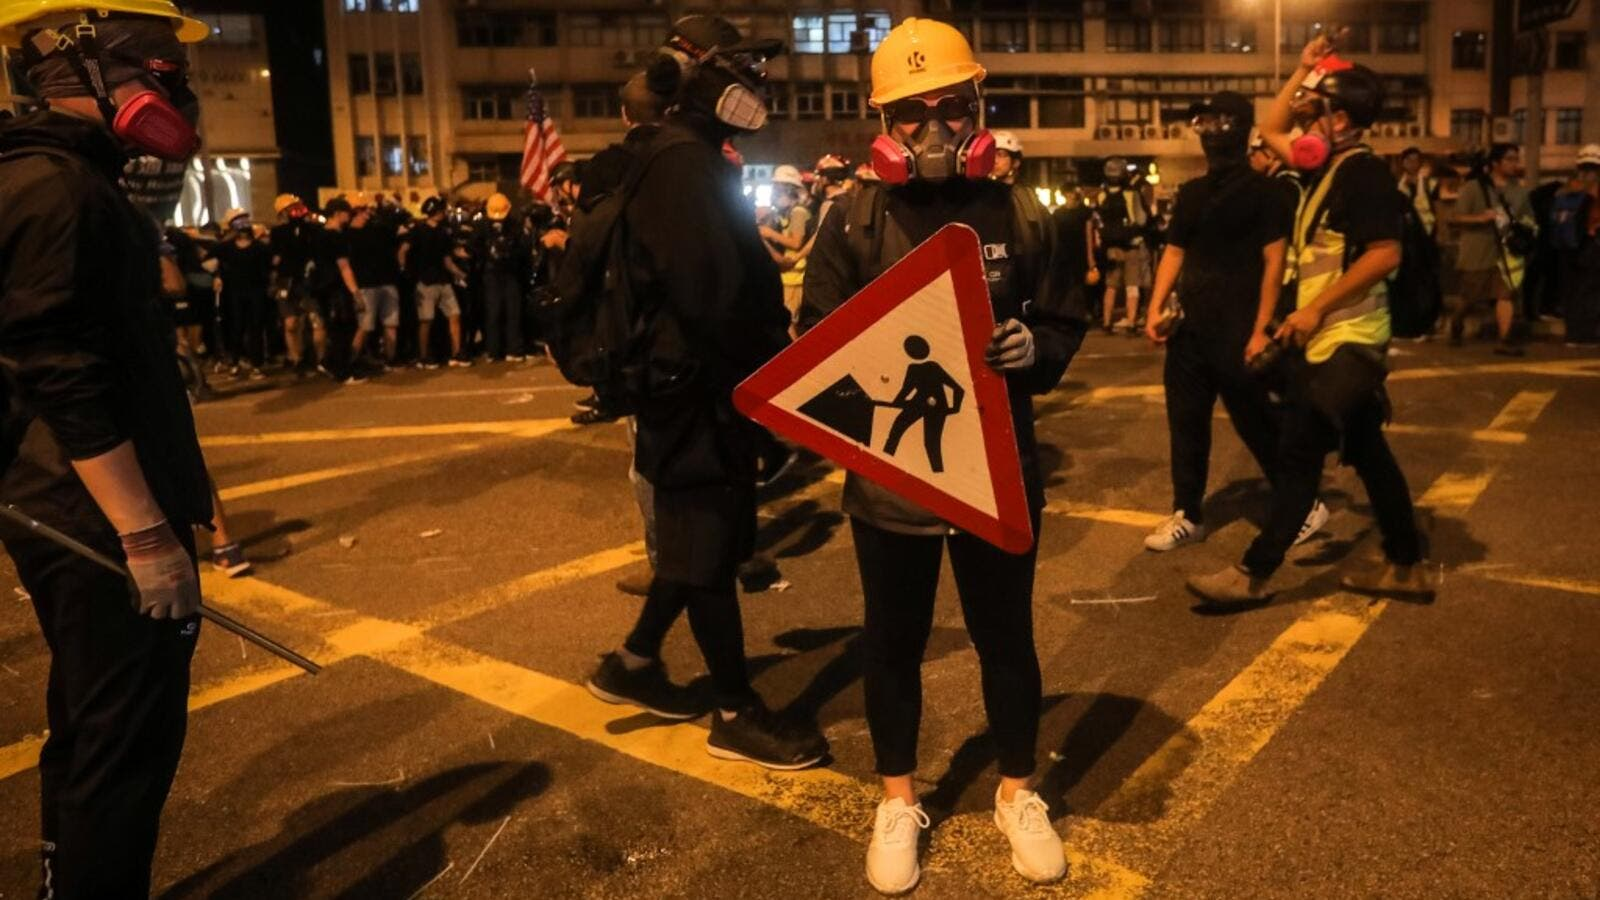 Hong Kong Leader Denounces The Violence in Sunday's Protests